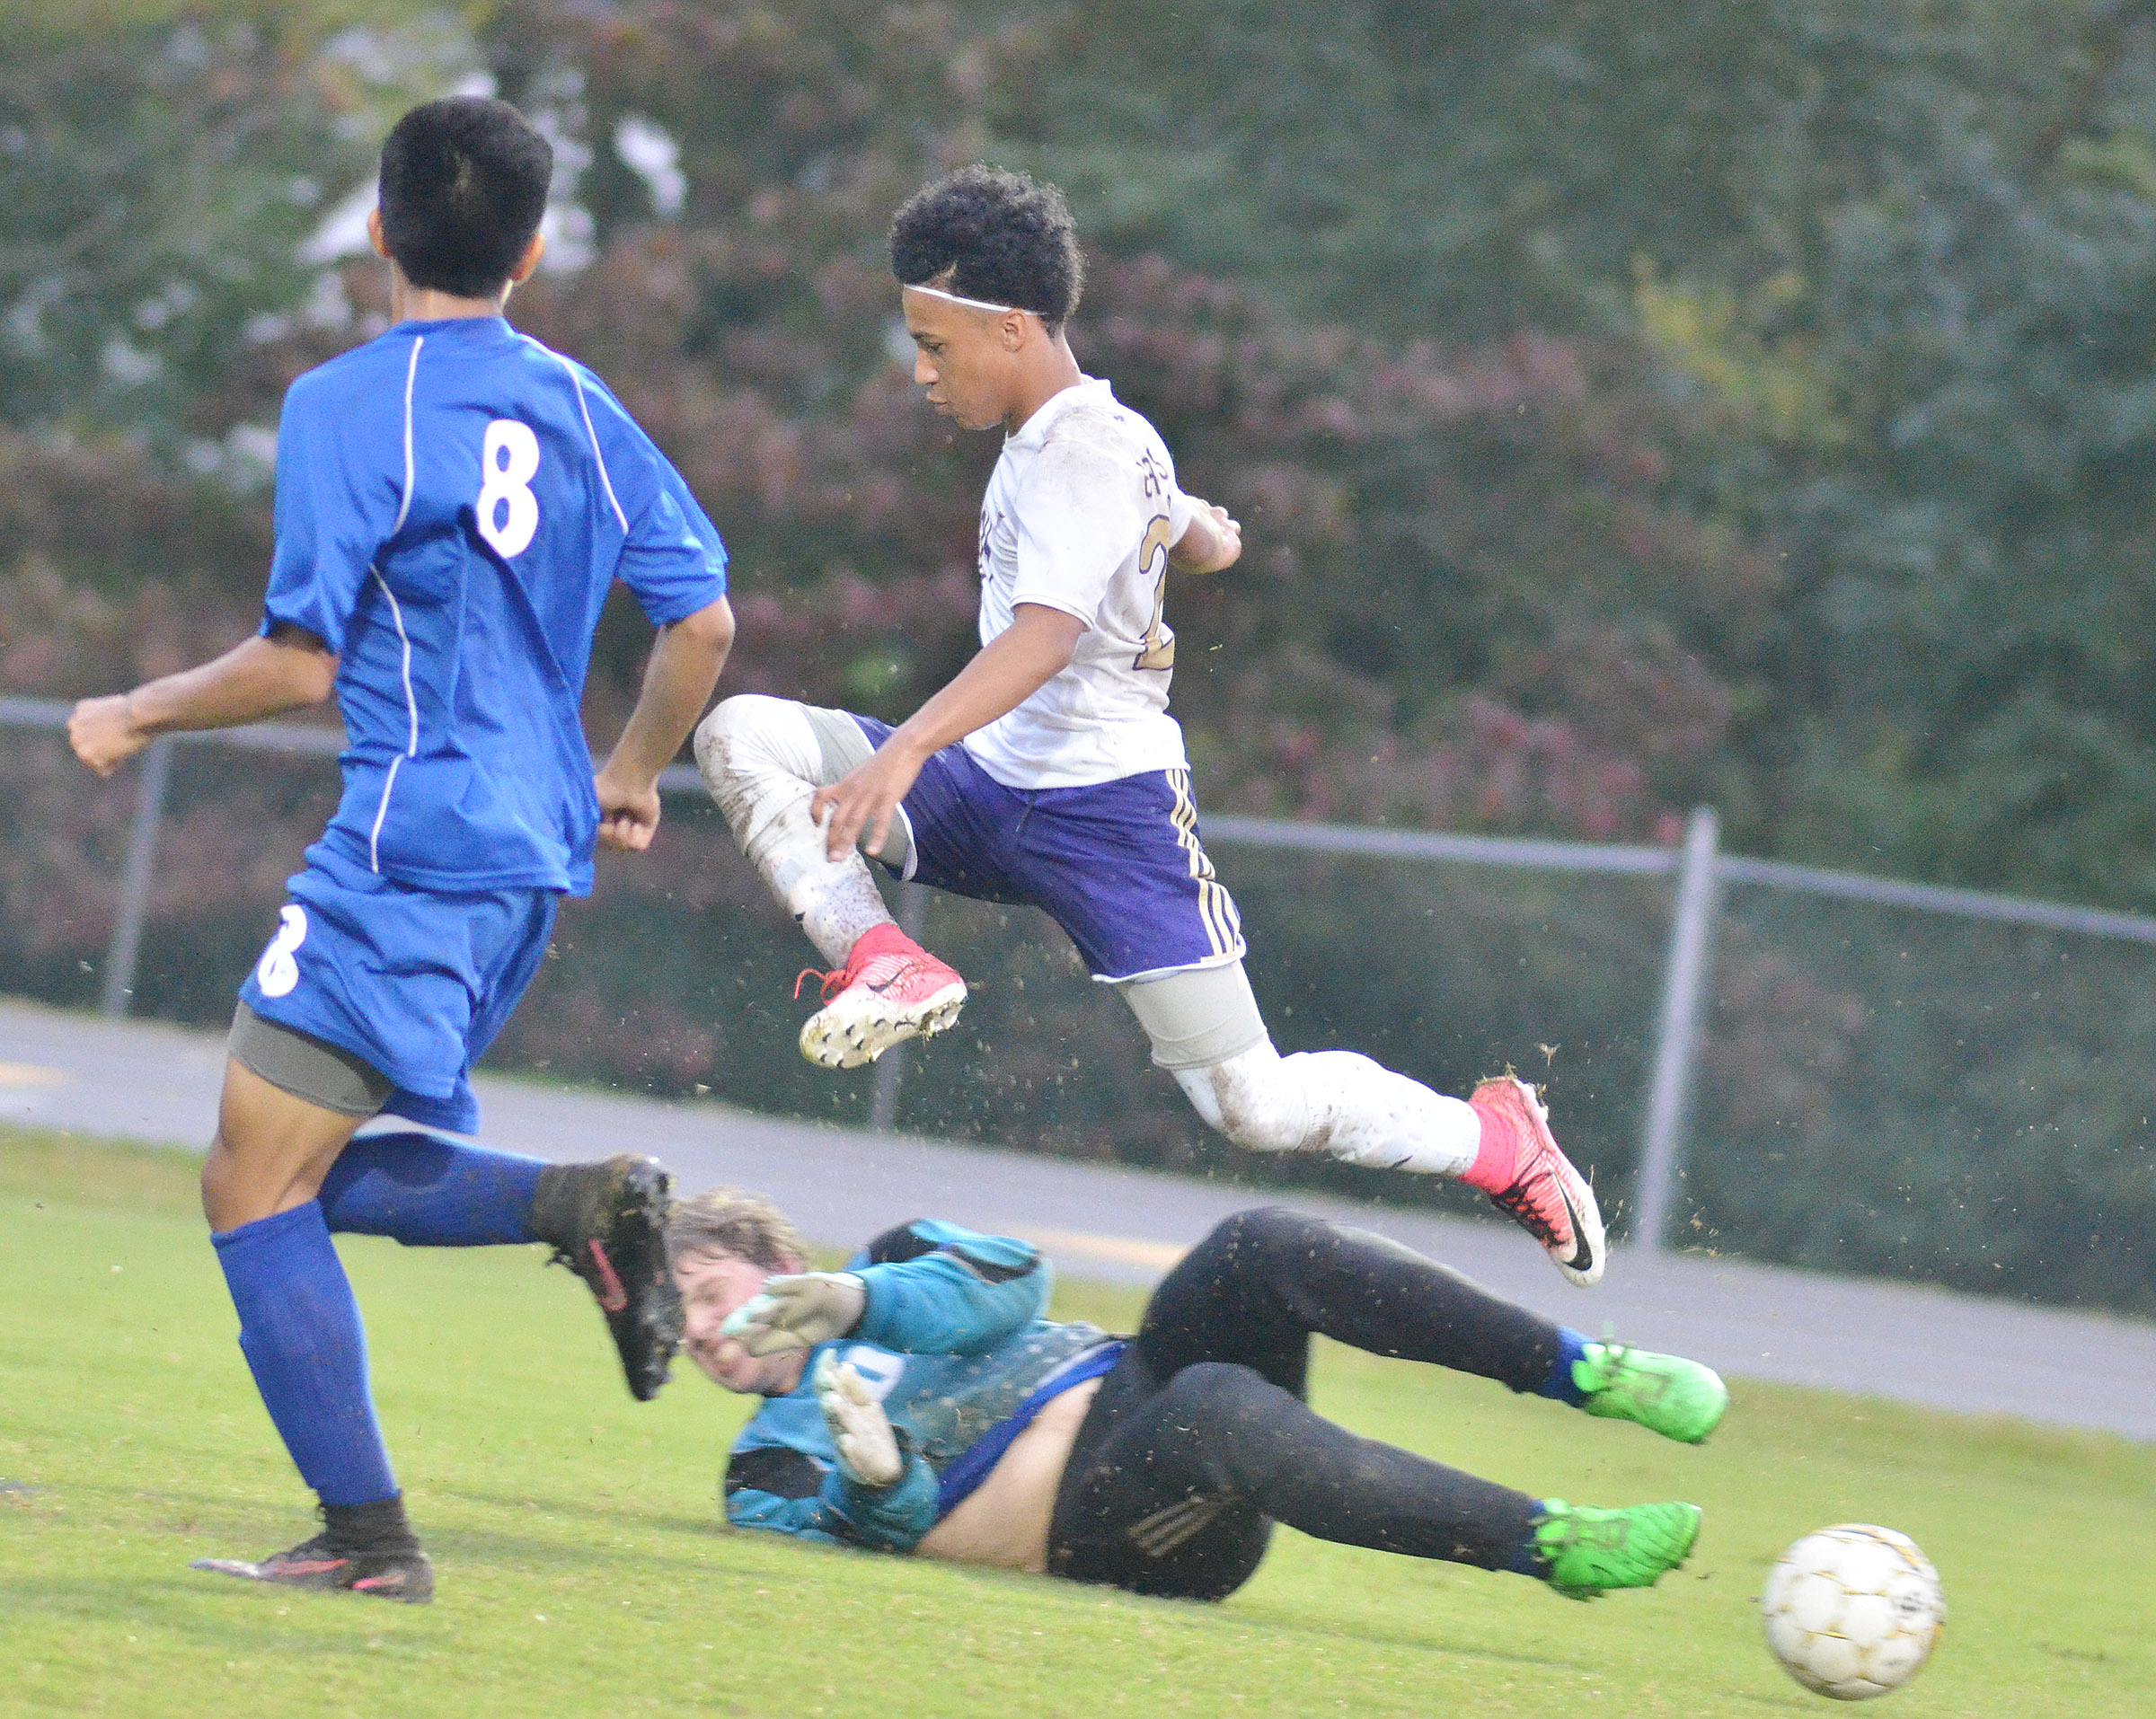 CHS junior Daniel Johnson jumps for the ball.